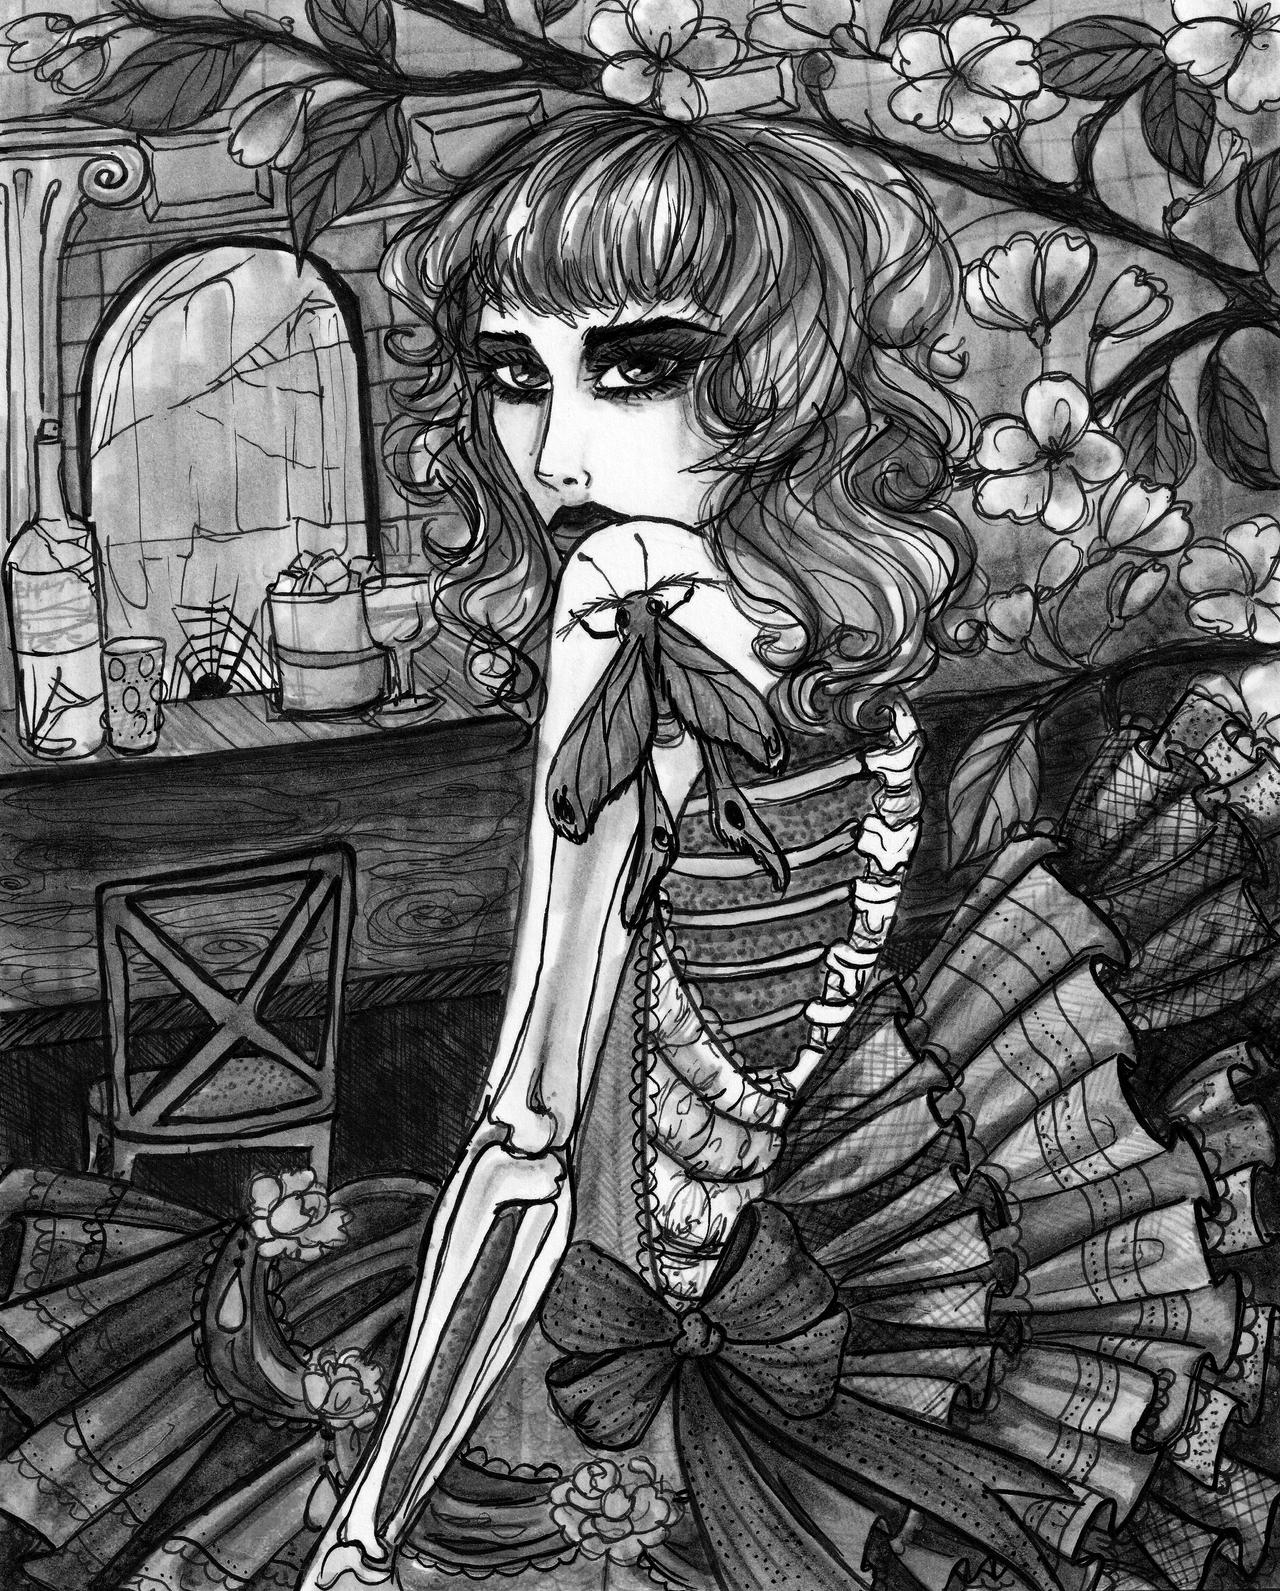 Nicole Dollanganger Fanart For Heart Shaped Bed By Starsinmyteacup On Deviantart